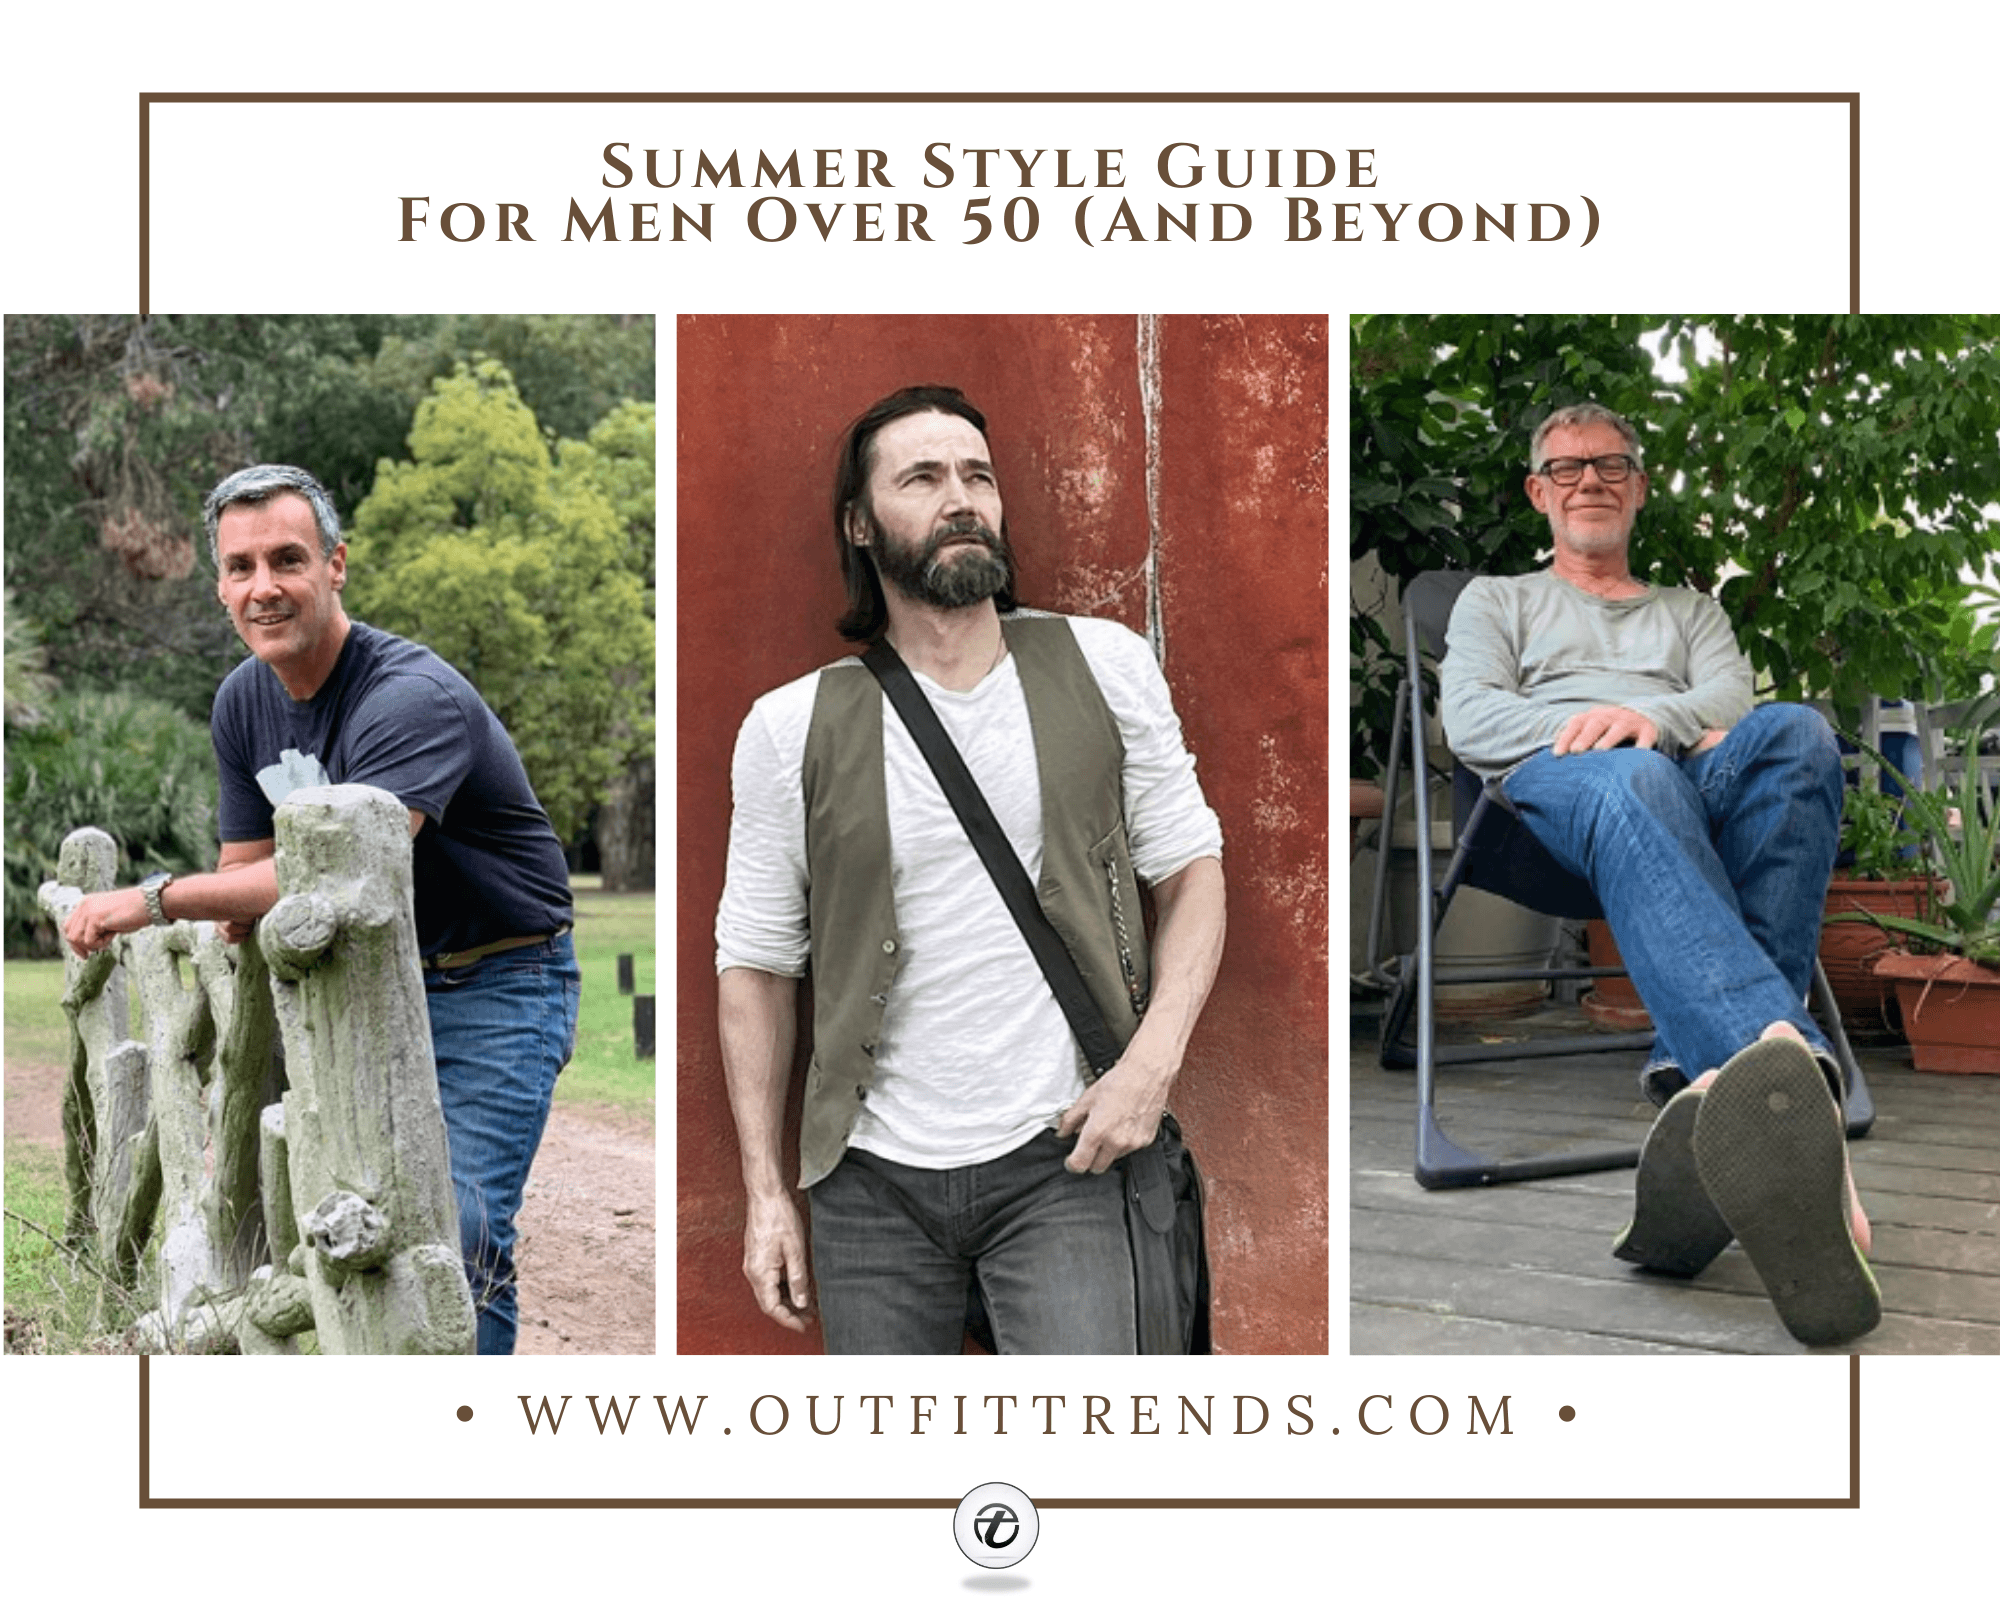 30 Best Summer Outfits For Men Over 50 To Stay Cool